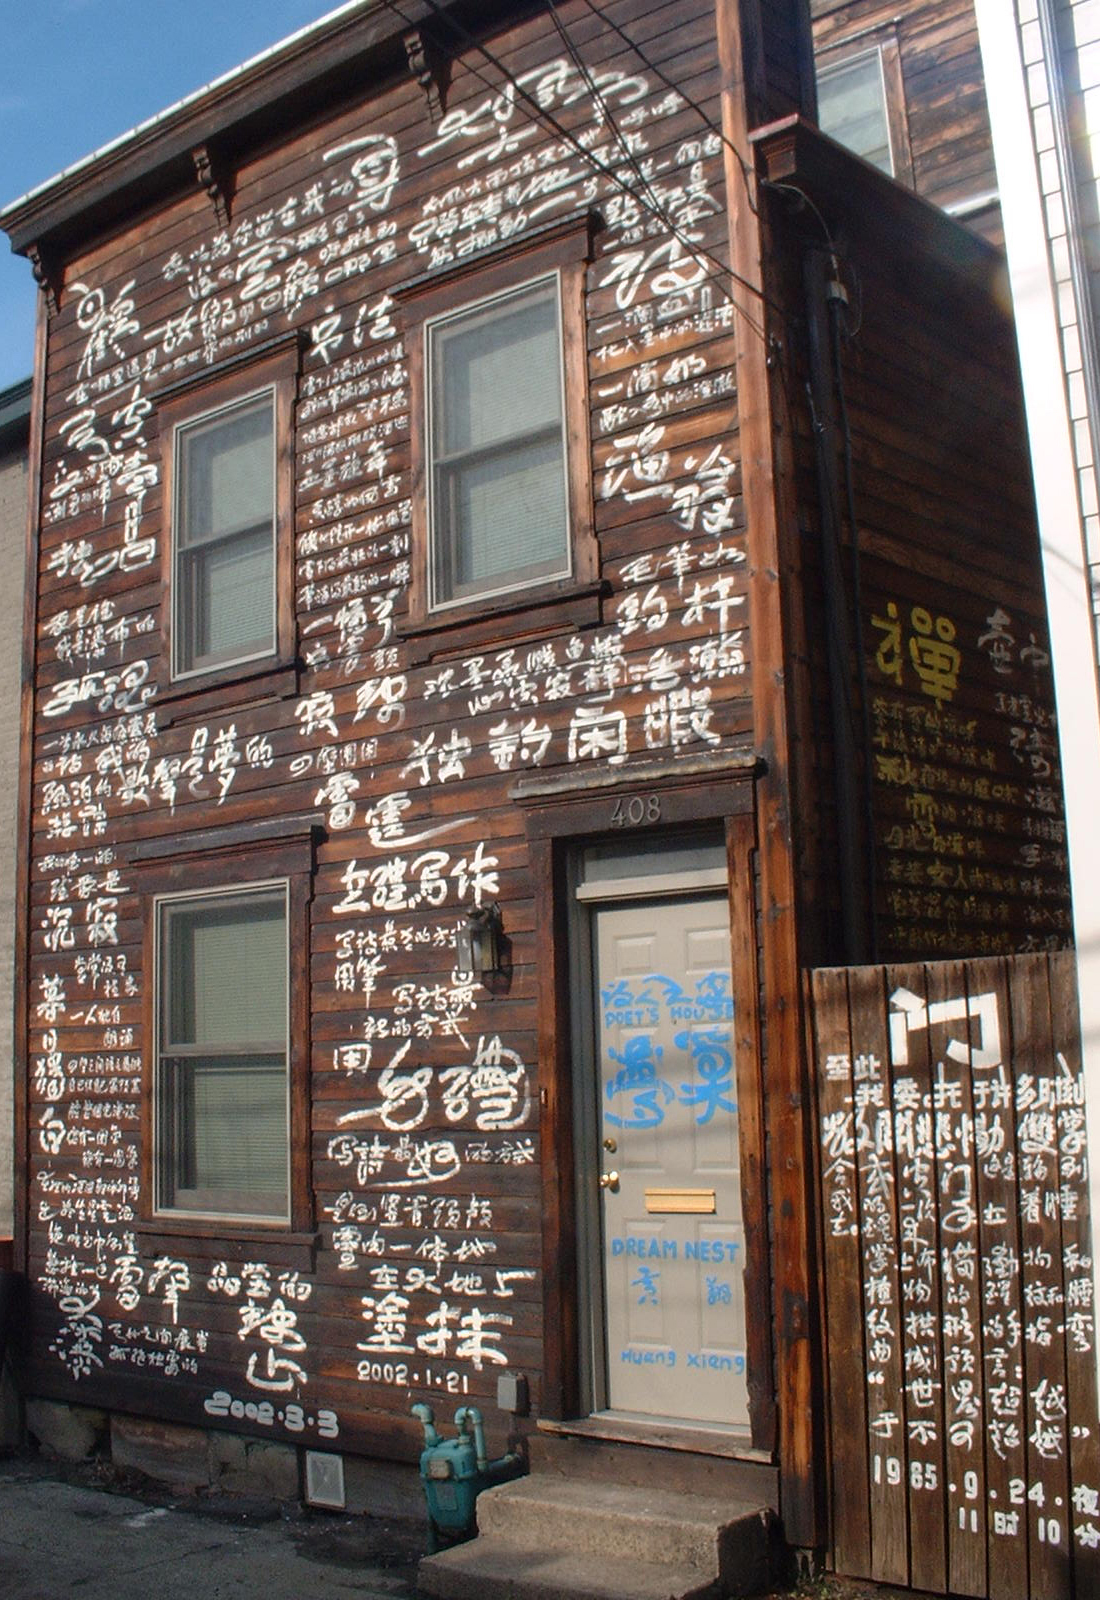 Huang Xiang's House Poem in Pittsburgh: Cursive calligraphy rattles the calm/Four walls trap the thunderclap.